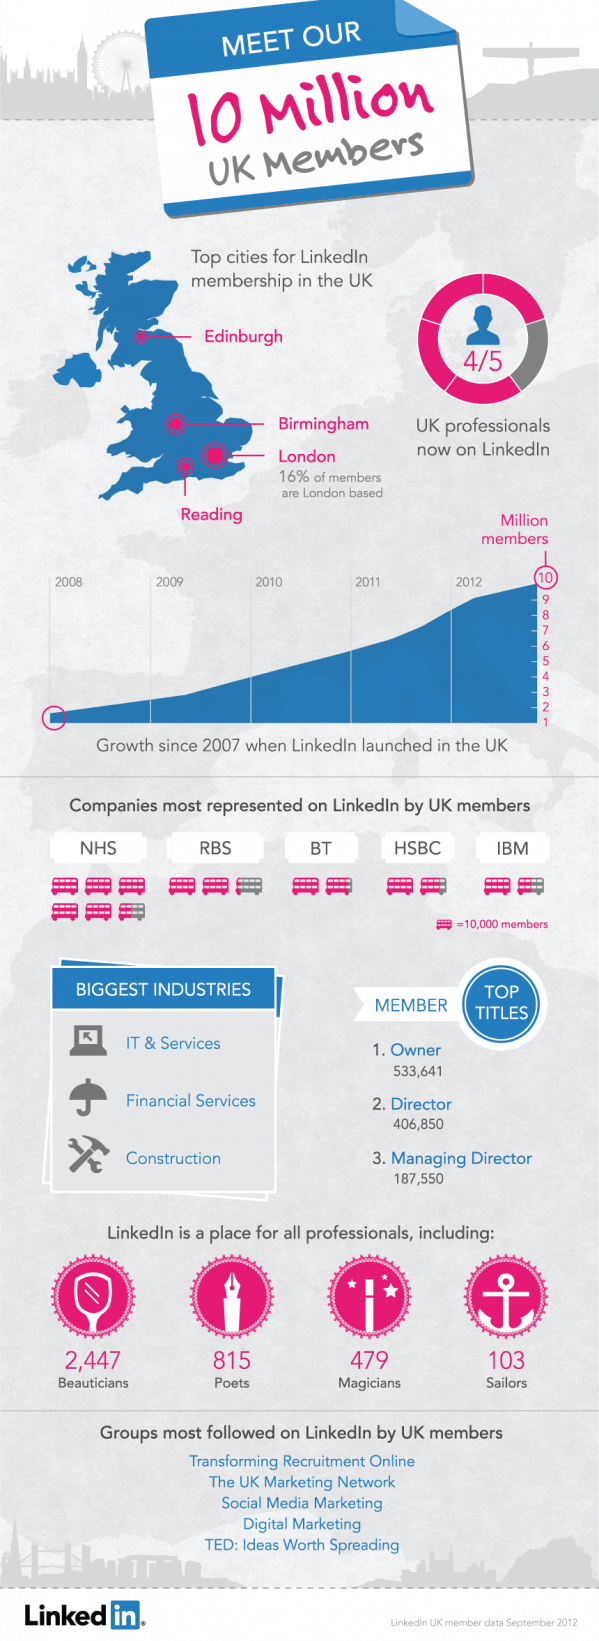 linkedin now has 10 millon users in great britain